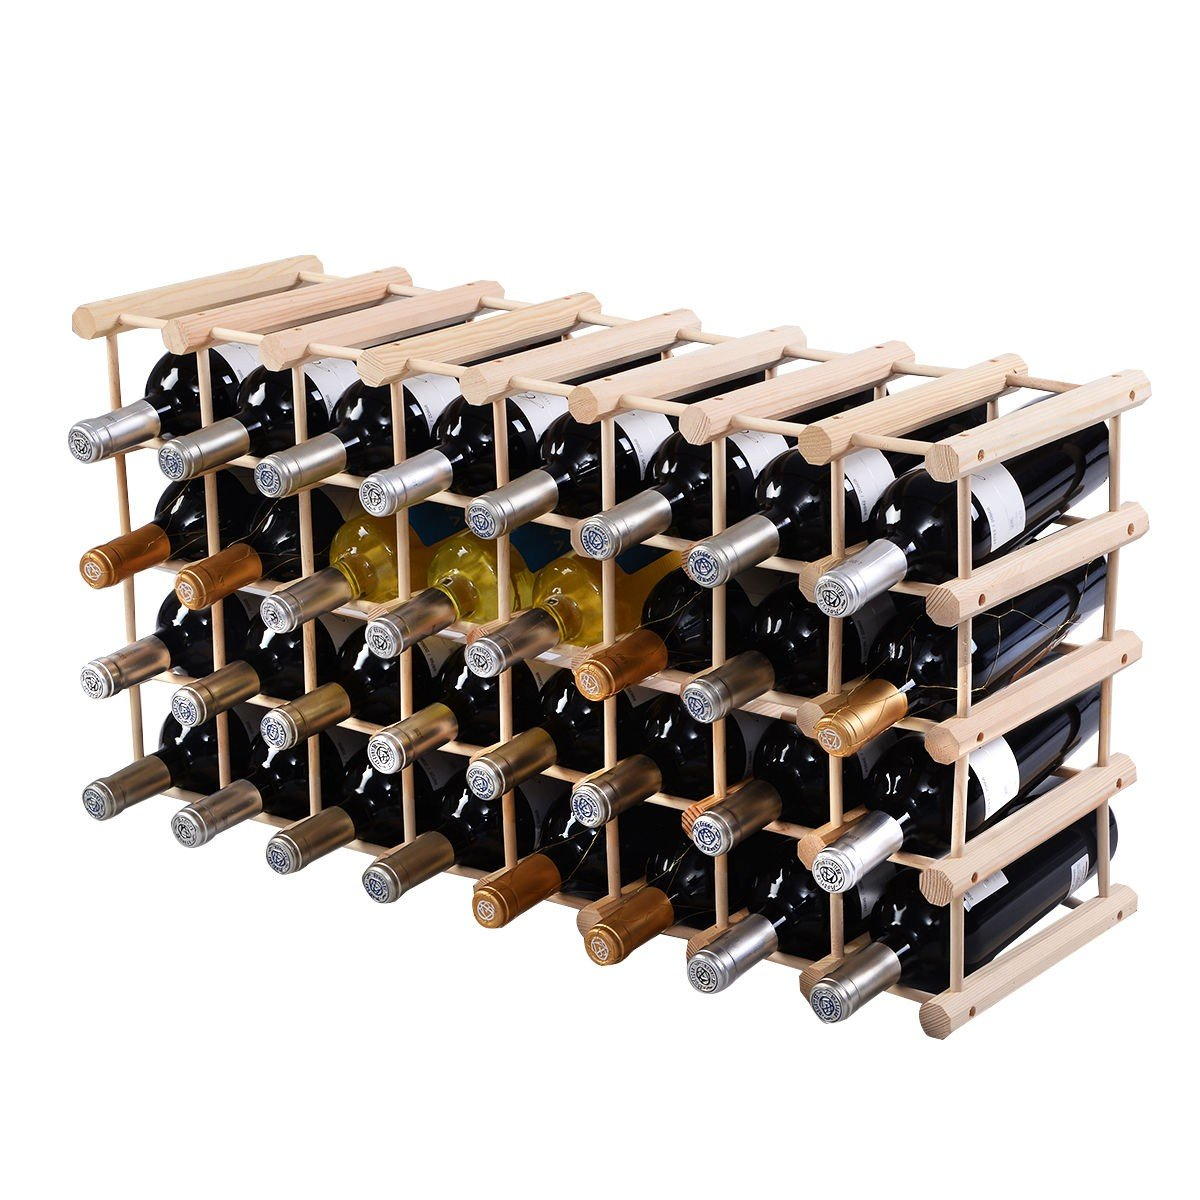 Wooden Bottle Rack Wooden Wine Holder Bottle Rack For 40 Bottles